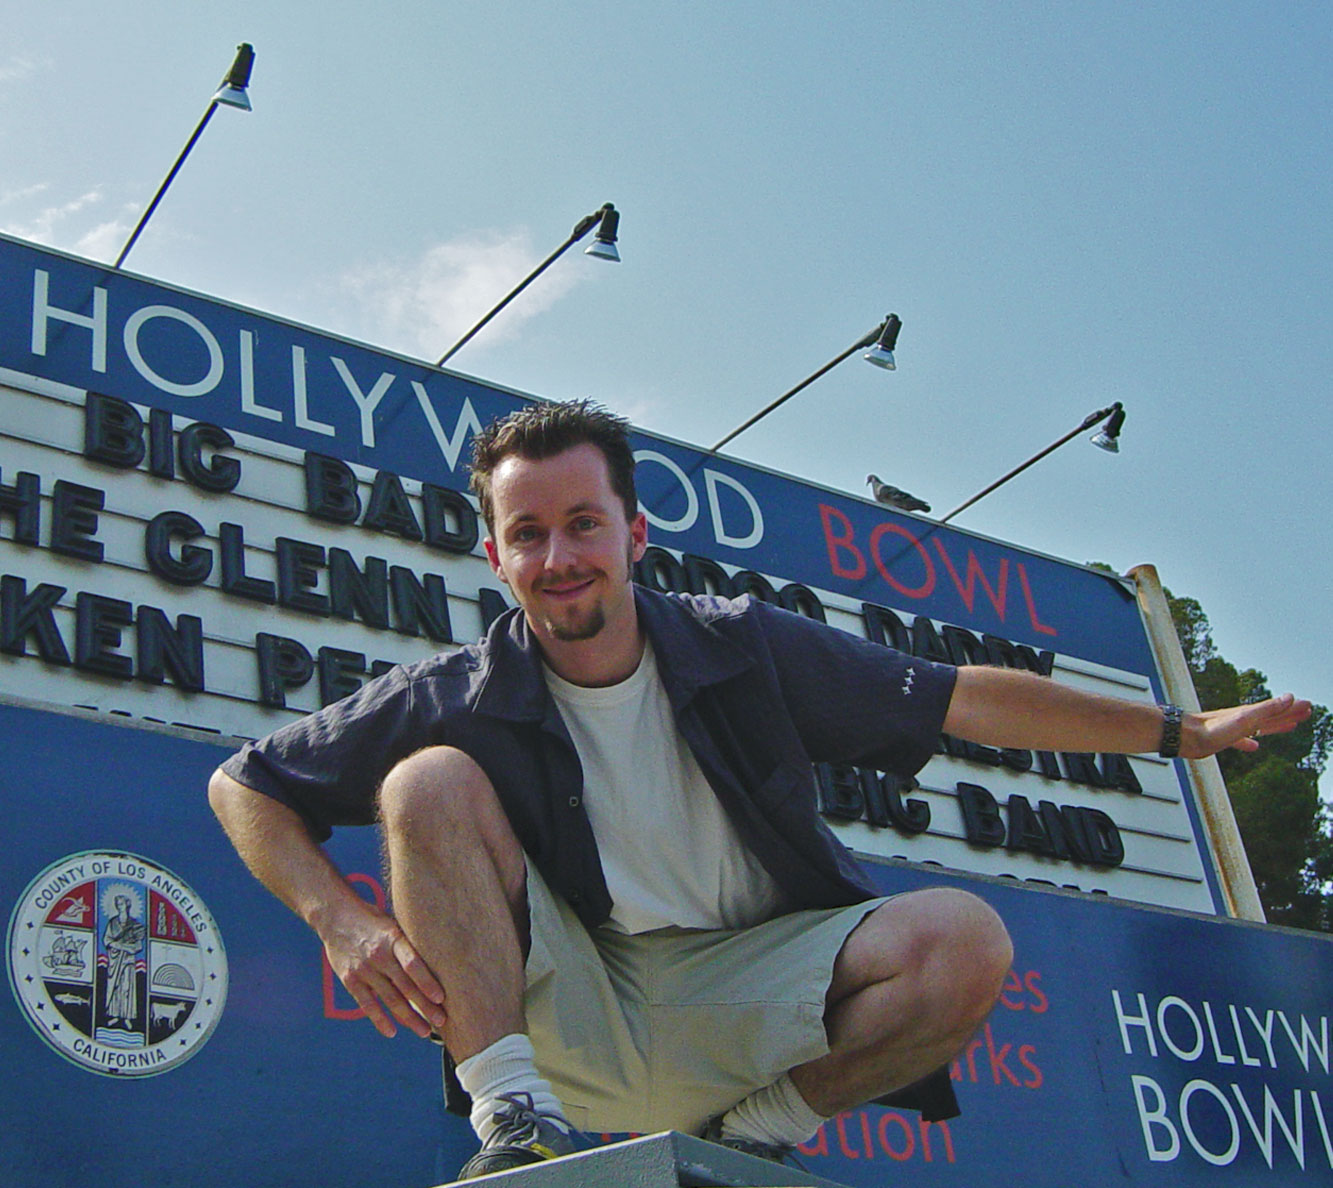 Glen in front of the Hollywood Bowl Sign